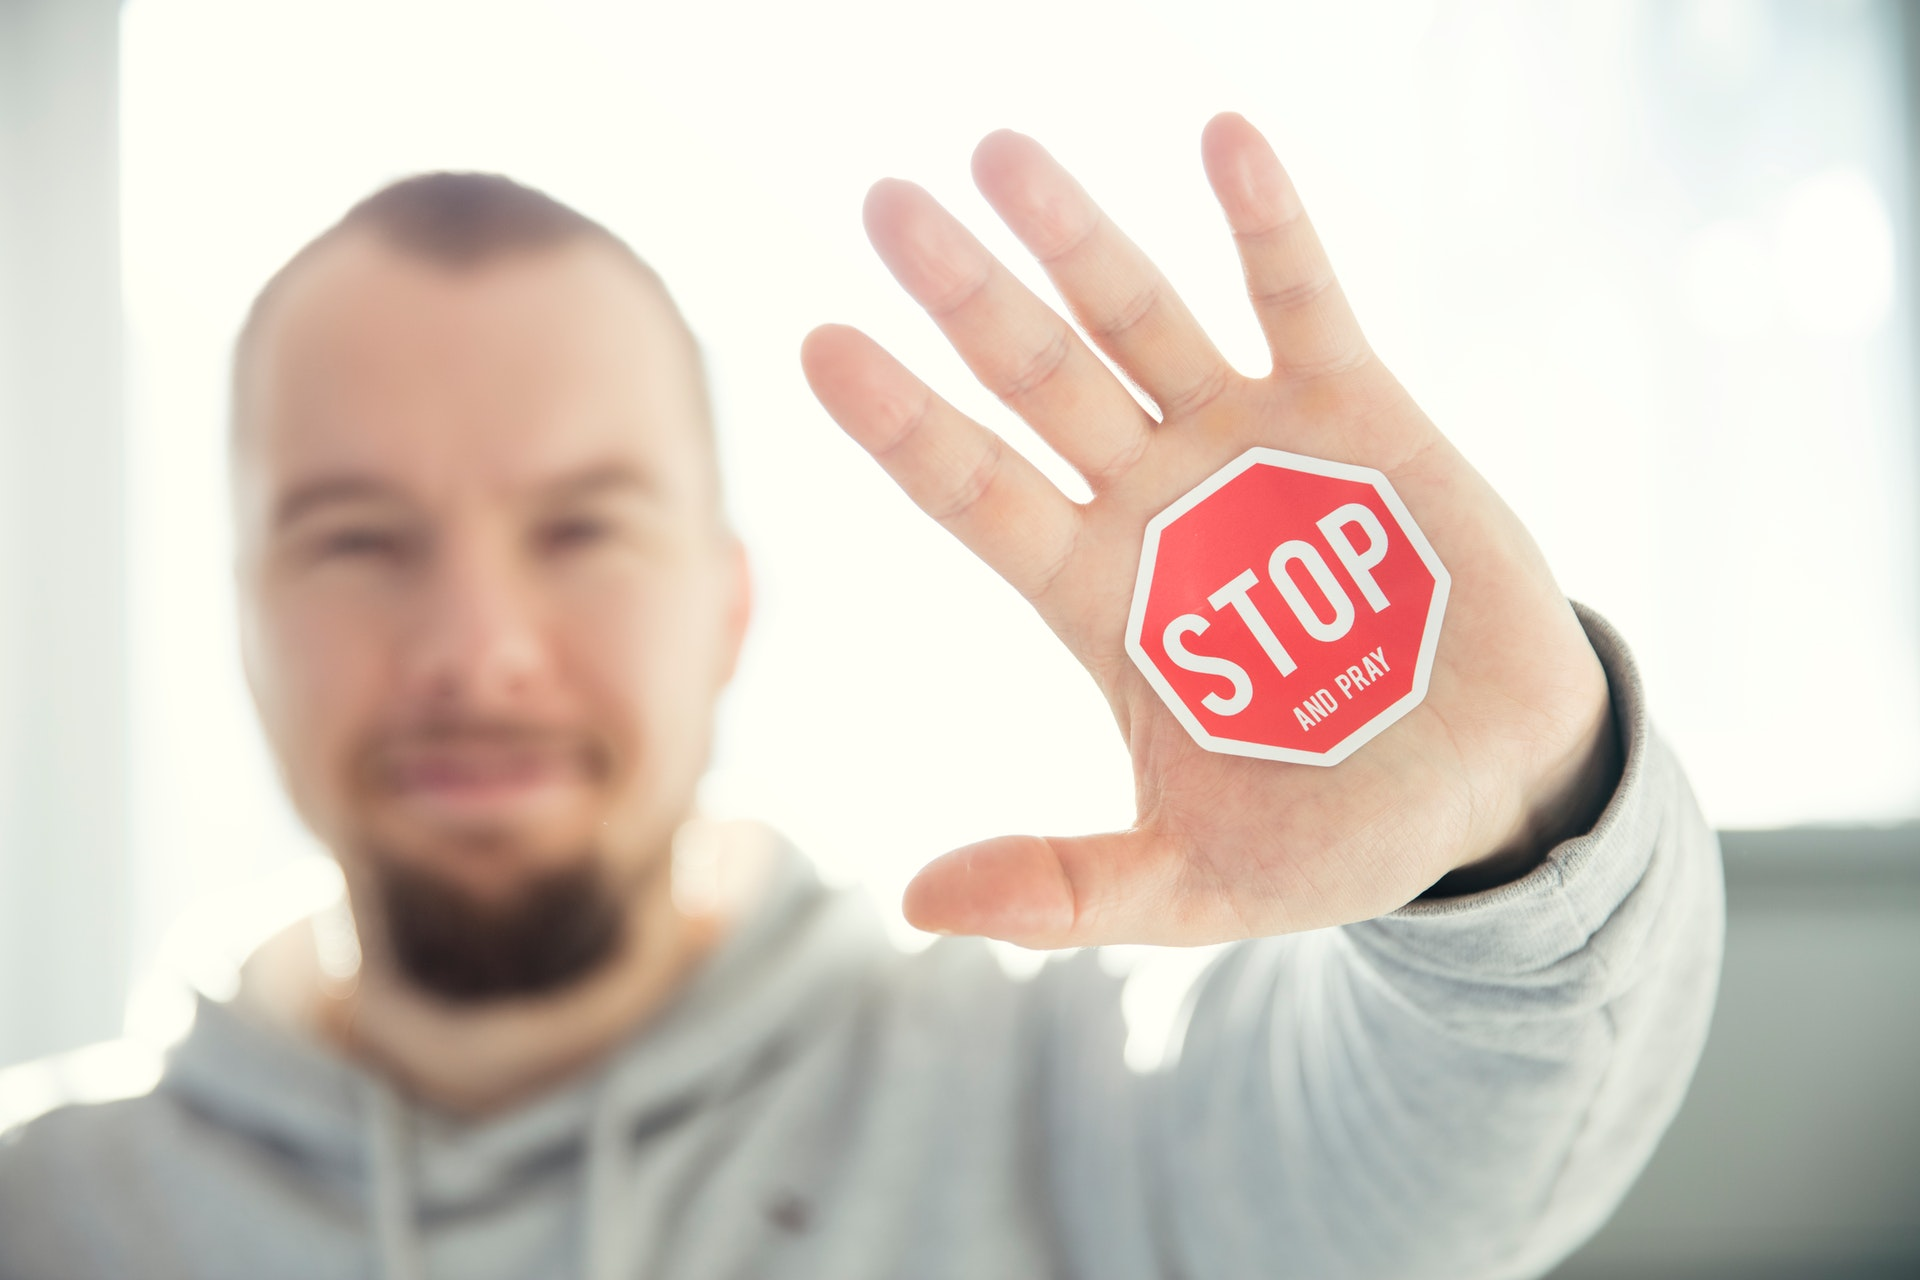 photo of a person's hand with stop sign